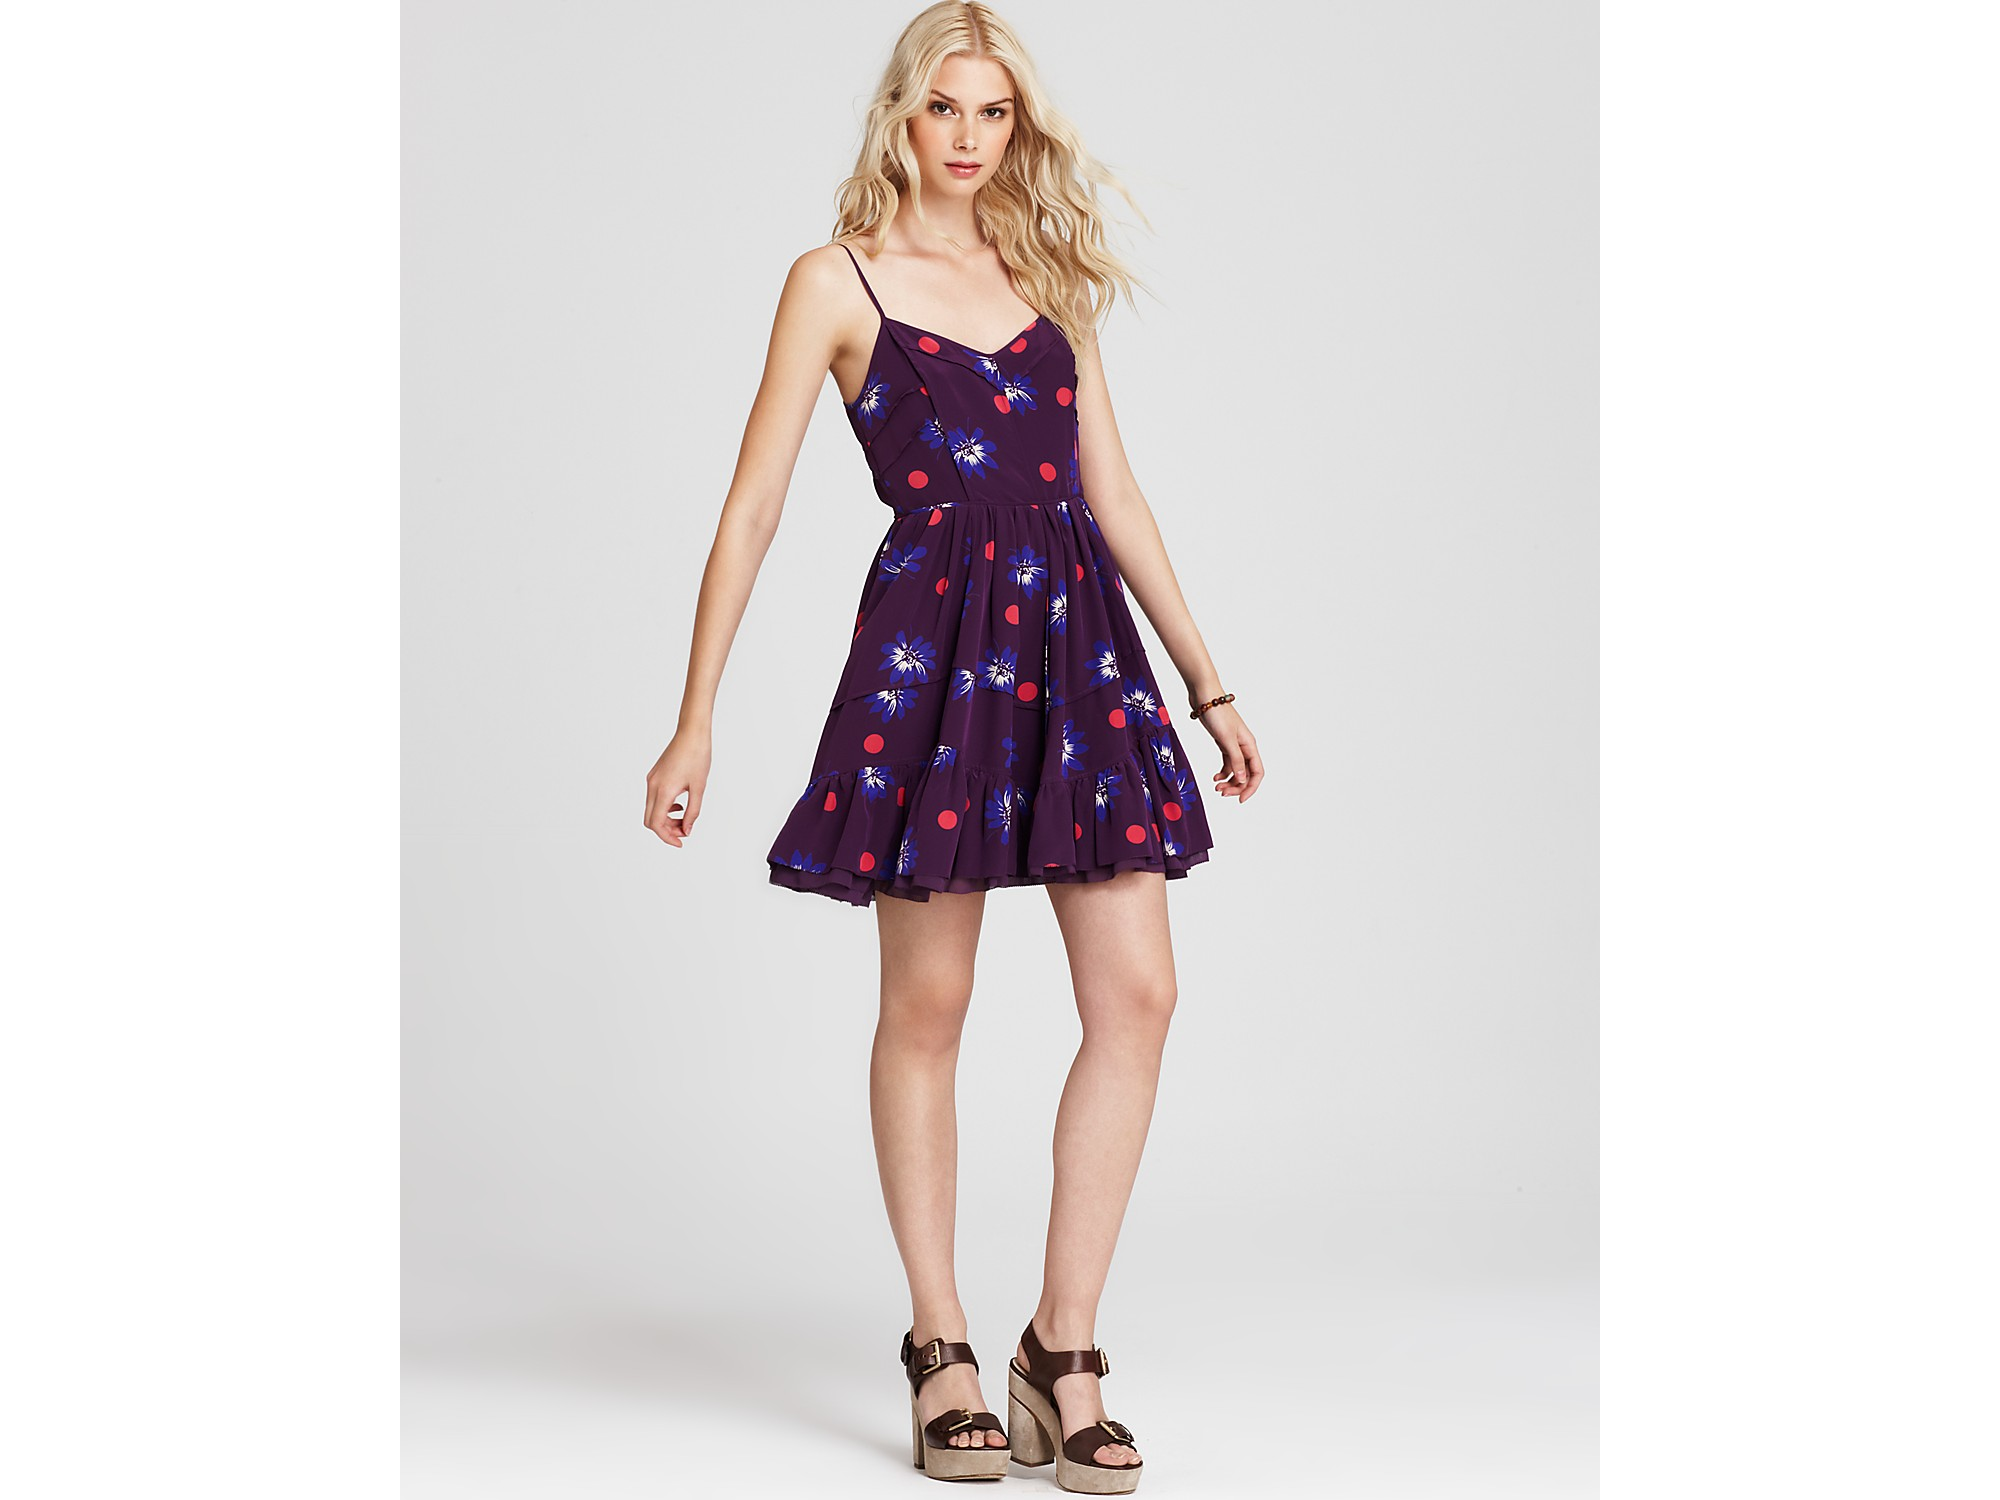 Lyst - Juicy Couture Polka Dot Floral Silk Dress in Purple